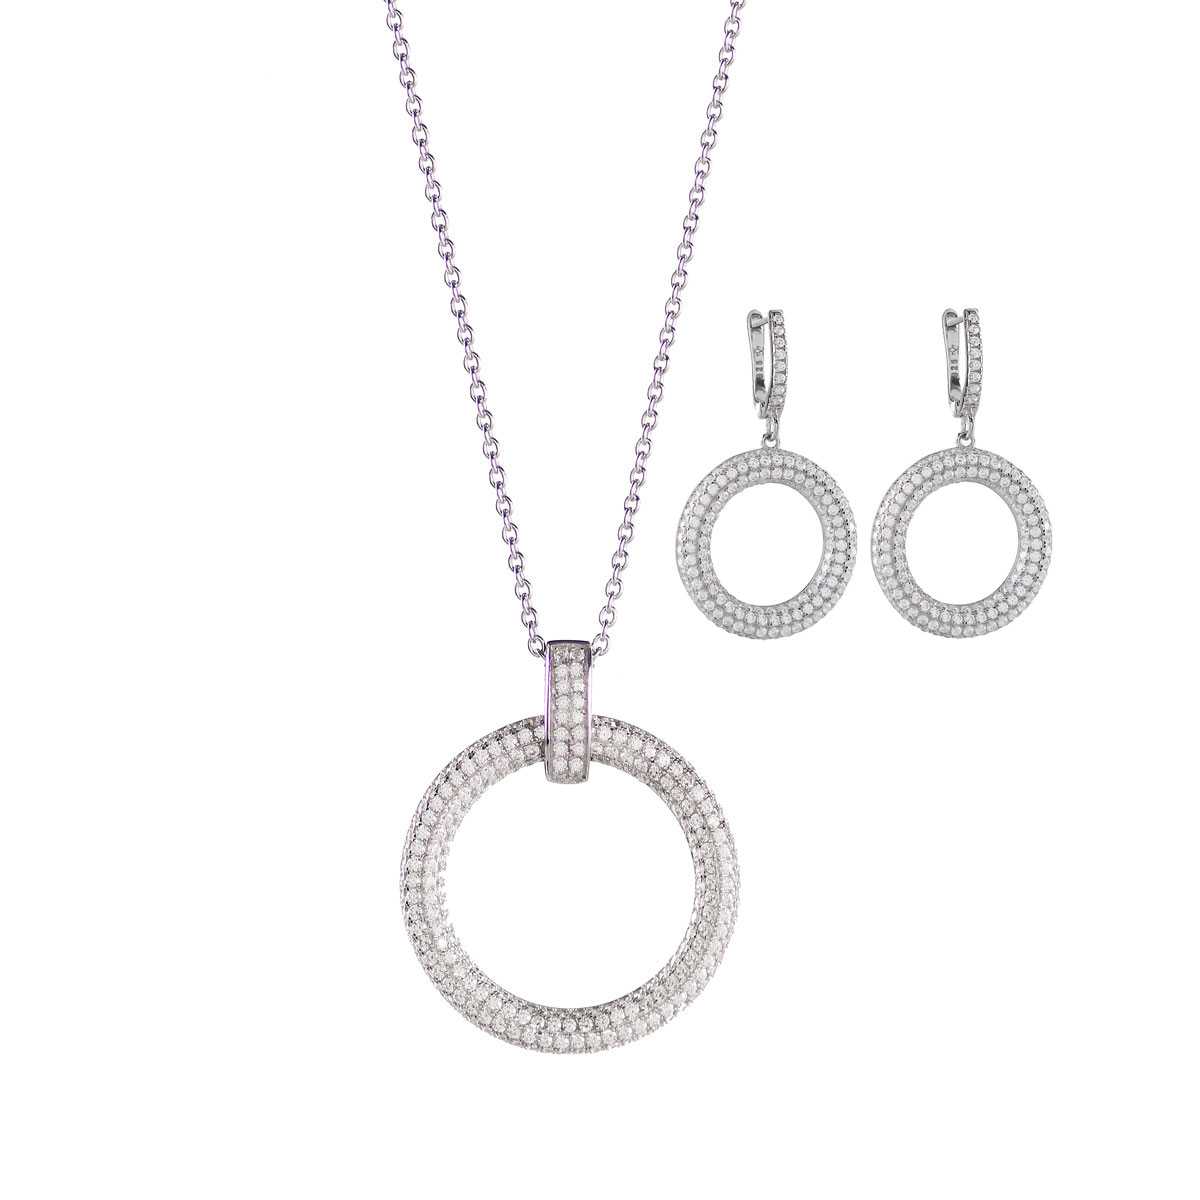 Cashs Ireland, Clarice Sterling Silver Pave Circle Necklace and Earrings Gift Set